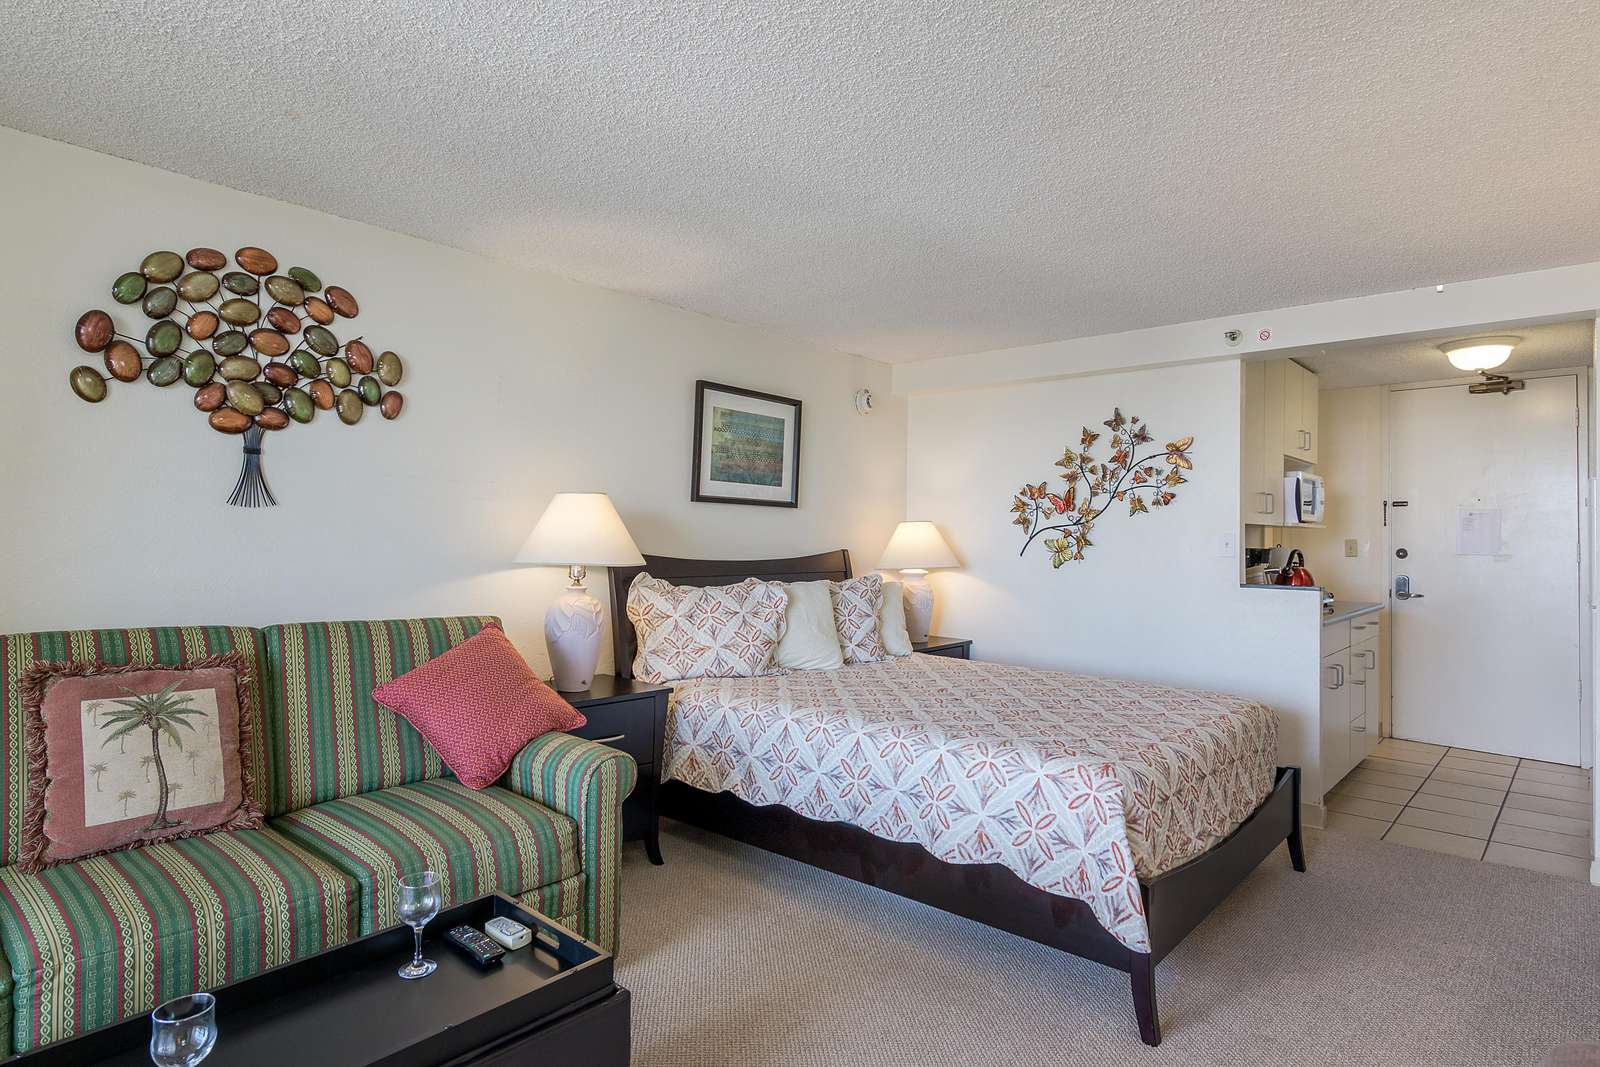 View of Queen Size Bed and Kitchenette